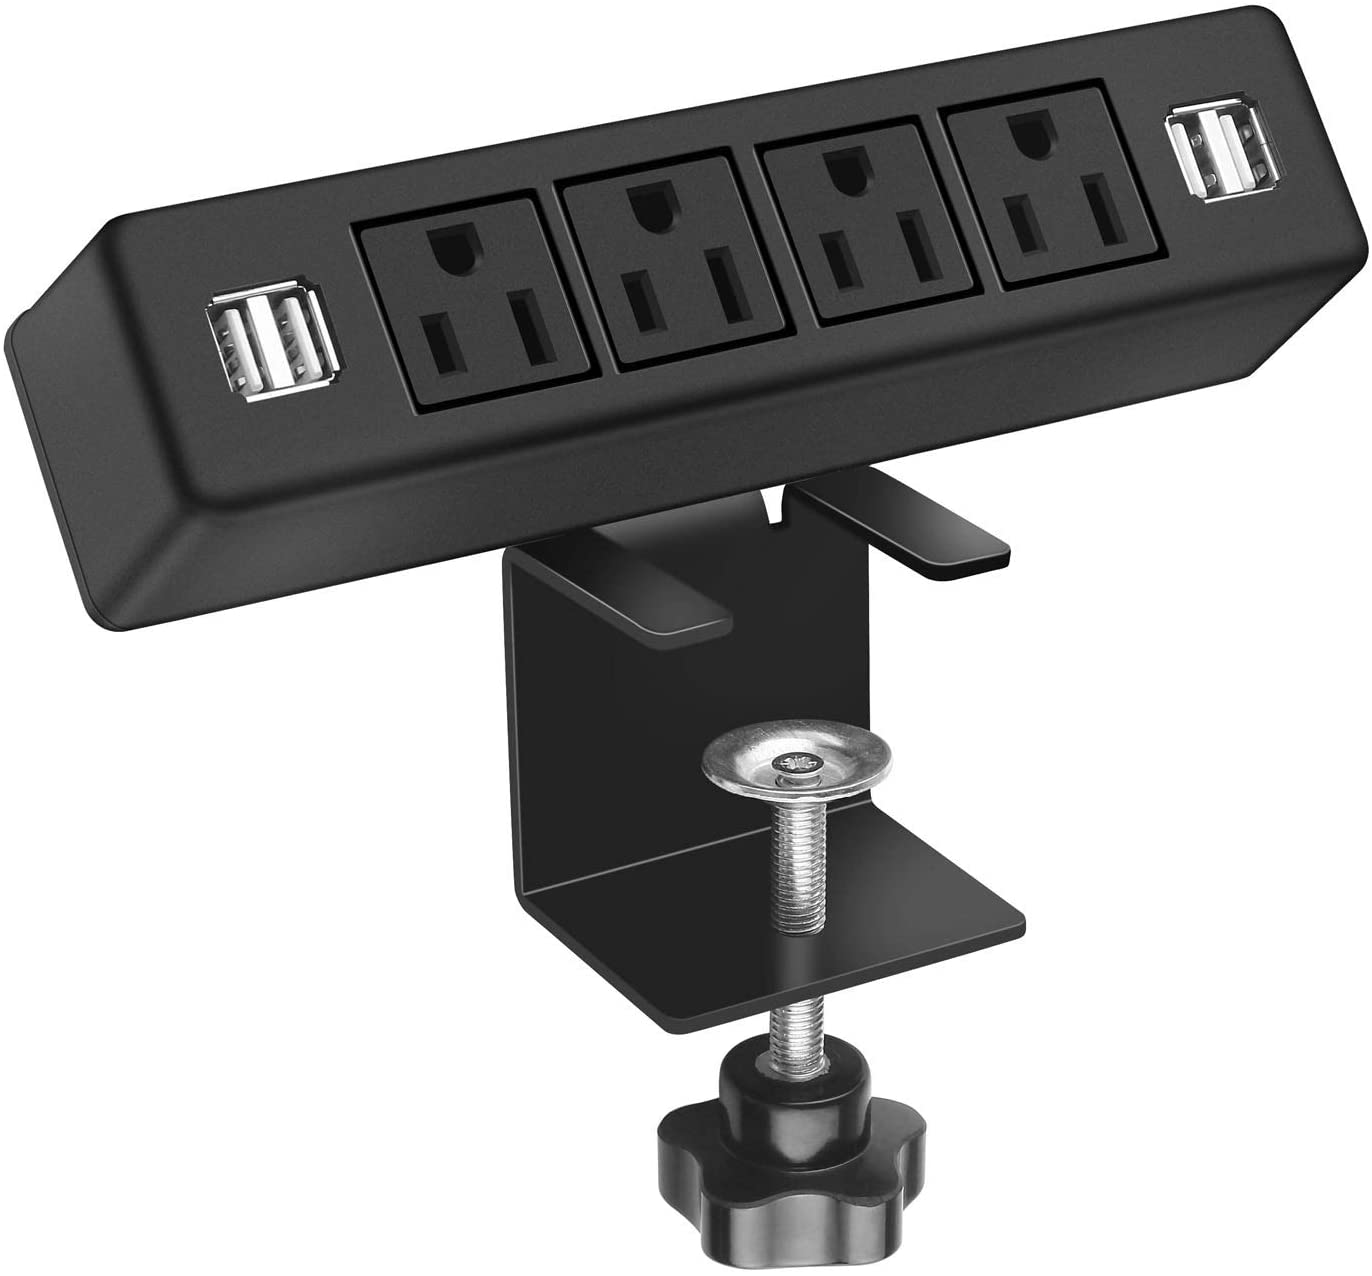 Desk Clamp Power Strip with 4 USB Ports, Desktop Edge Mount Outlets, Removable Desk Mount Multi-Outlets,Power Socket Connect 4 AC Outlet for Home Office Reading